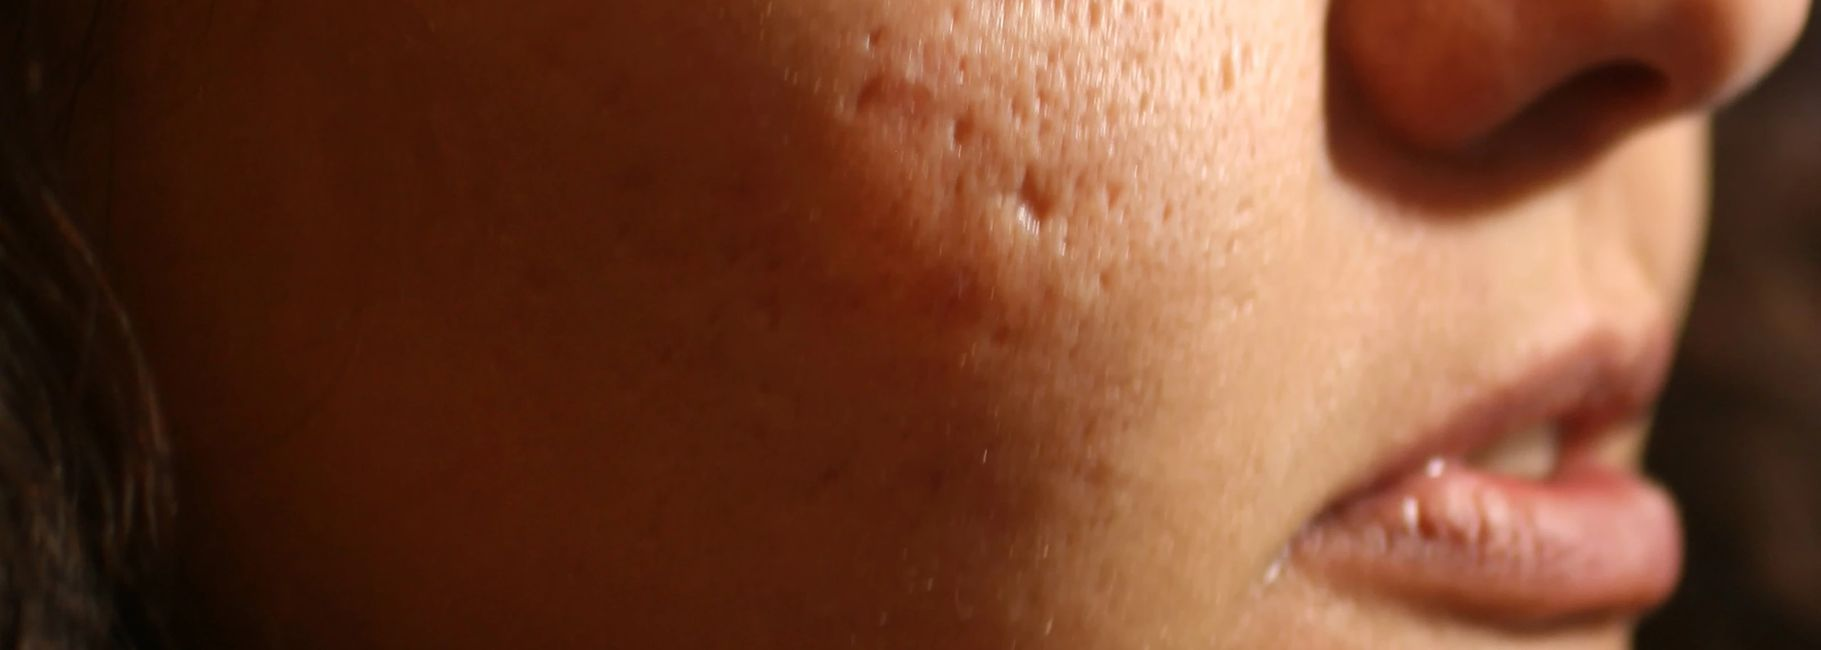 PRP treatment for acne scars little rock, PRP for acne surgical scars near me, PRP injection scar